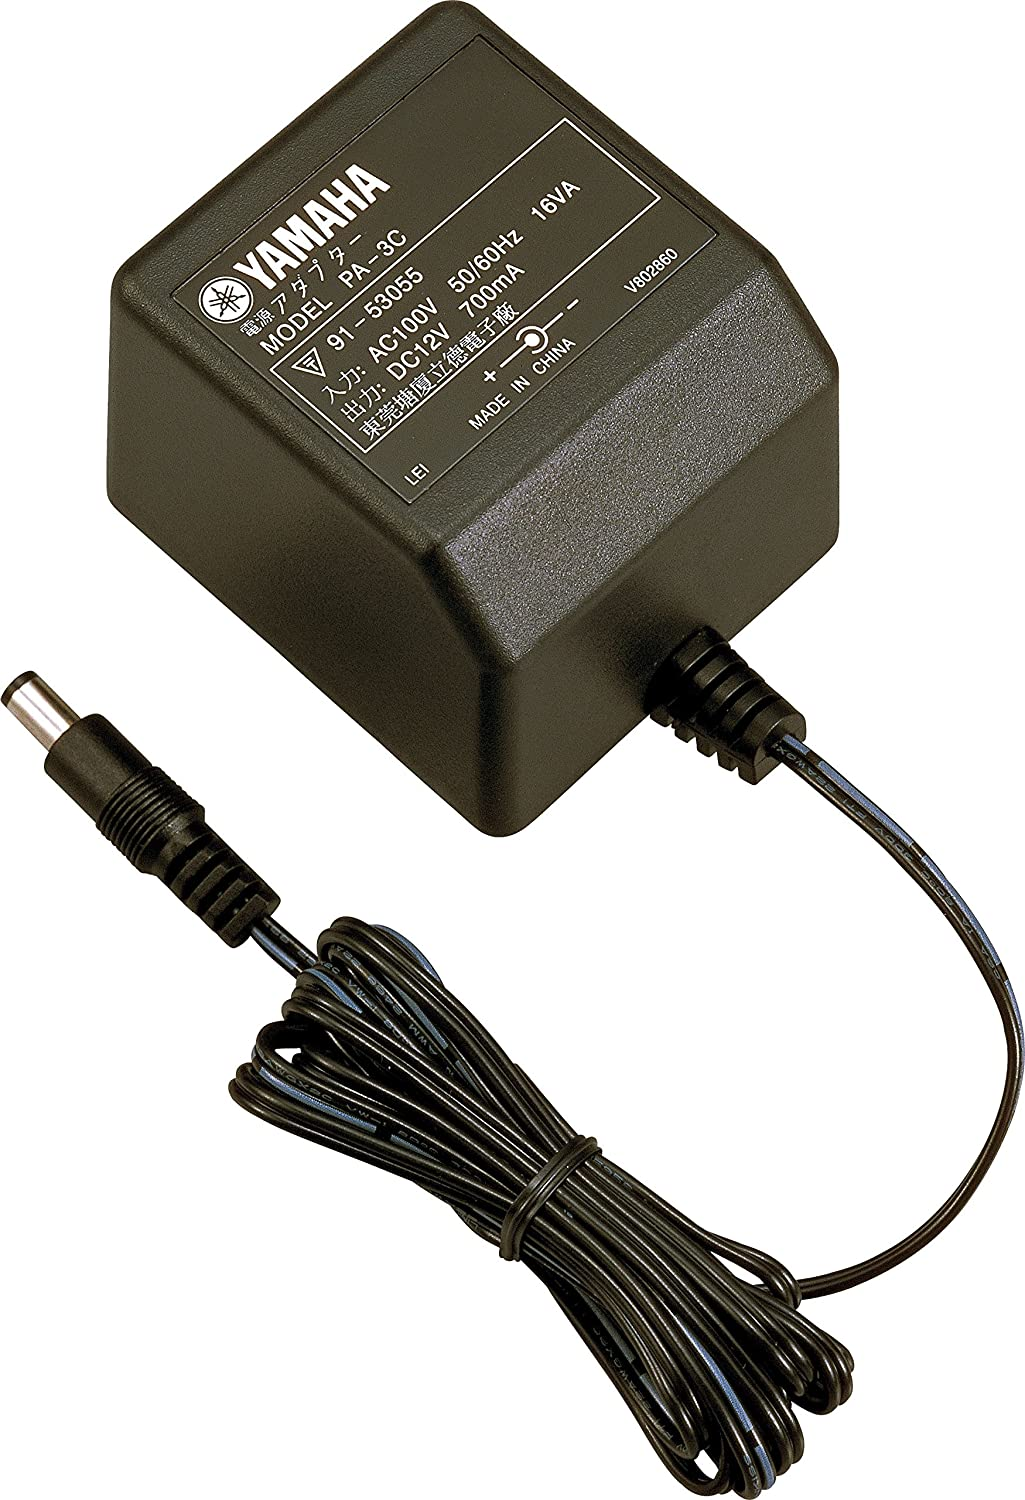 DC 12v PA-6 PA-3C Mains Power Supply Adapter Adaptor for Yamaha Keyboard